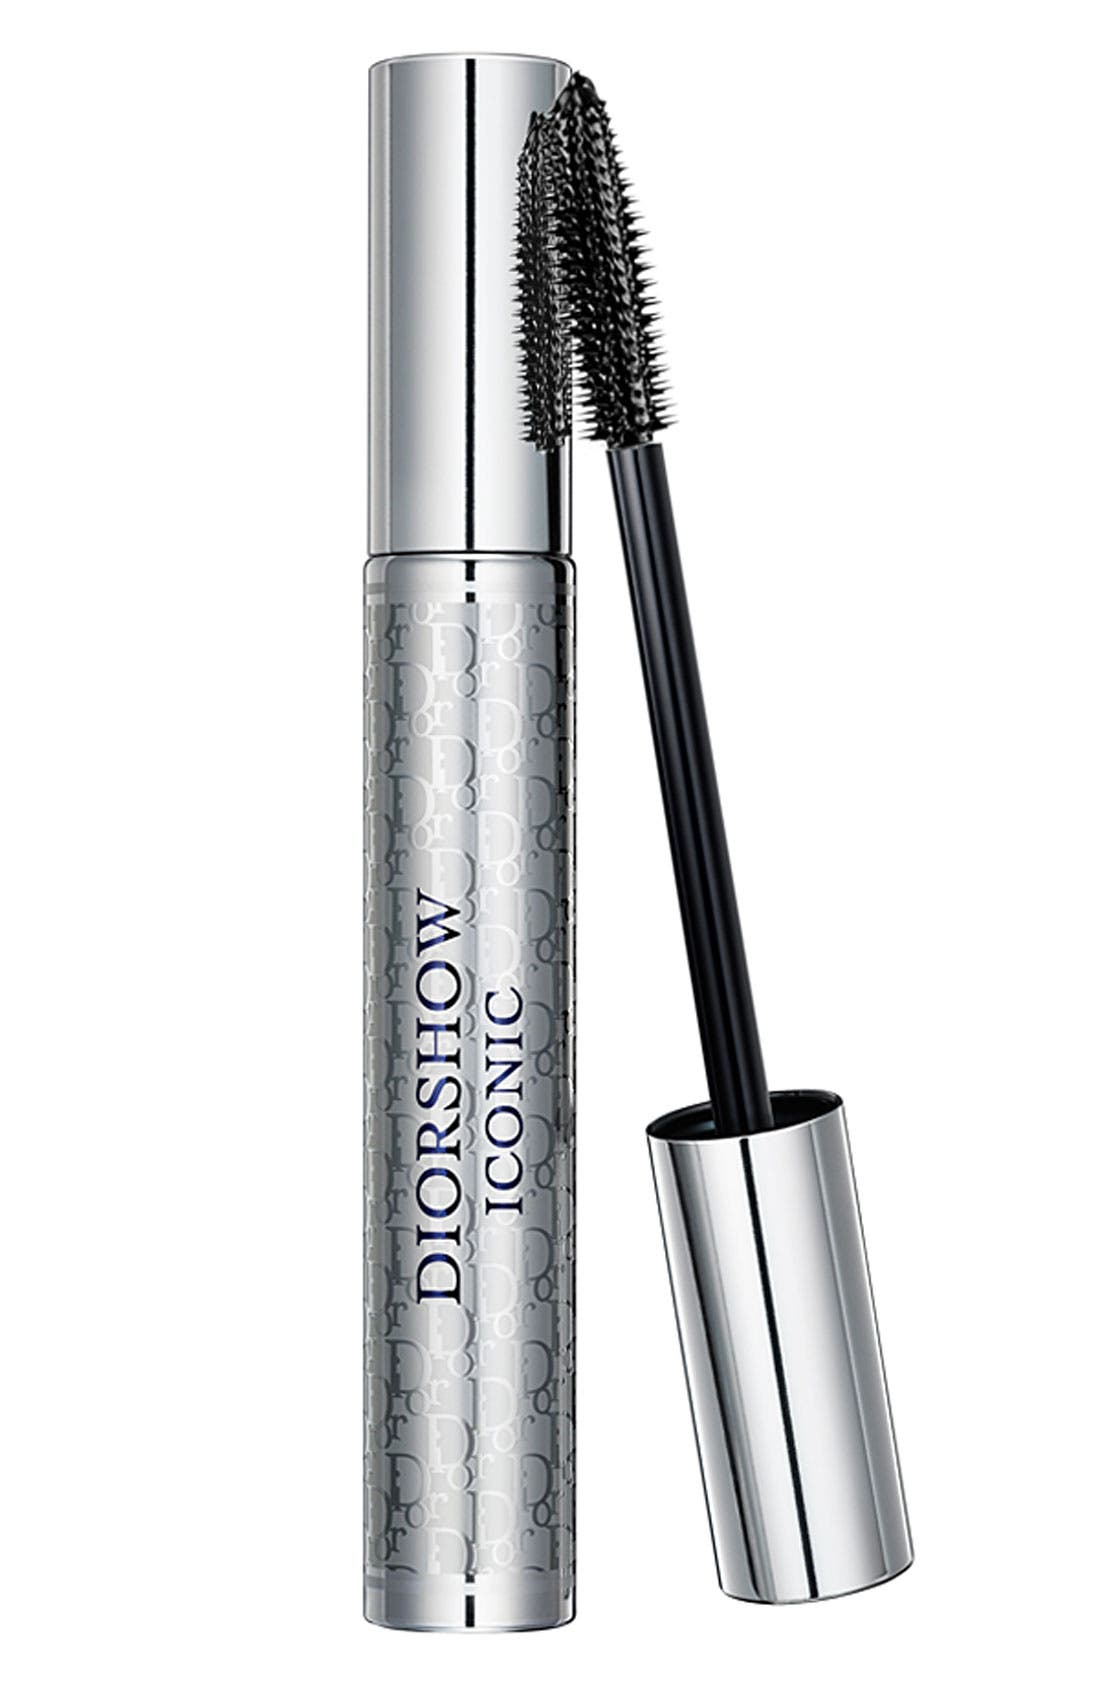 Dior 'Diorshow' Iconic High Definition Lash Curler Mascara